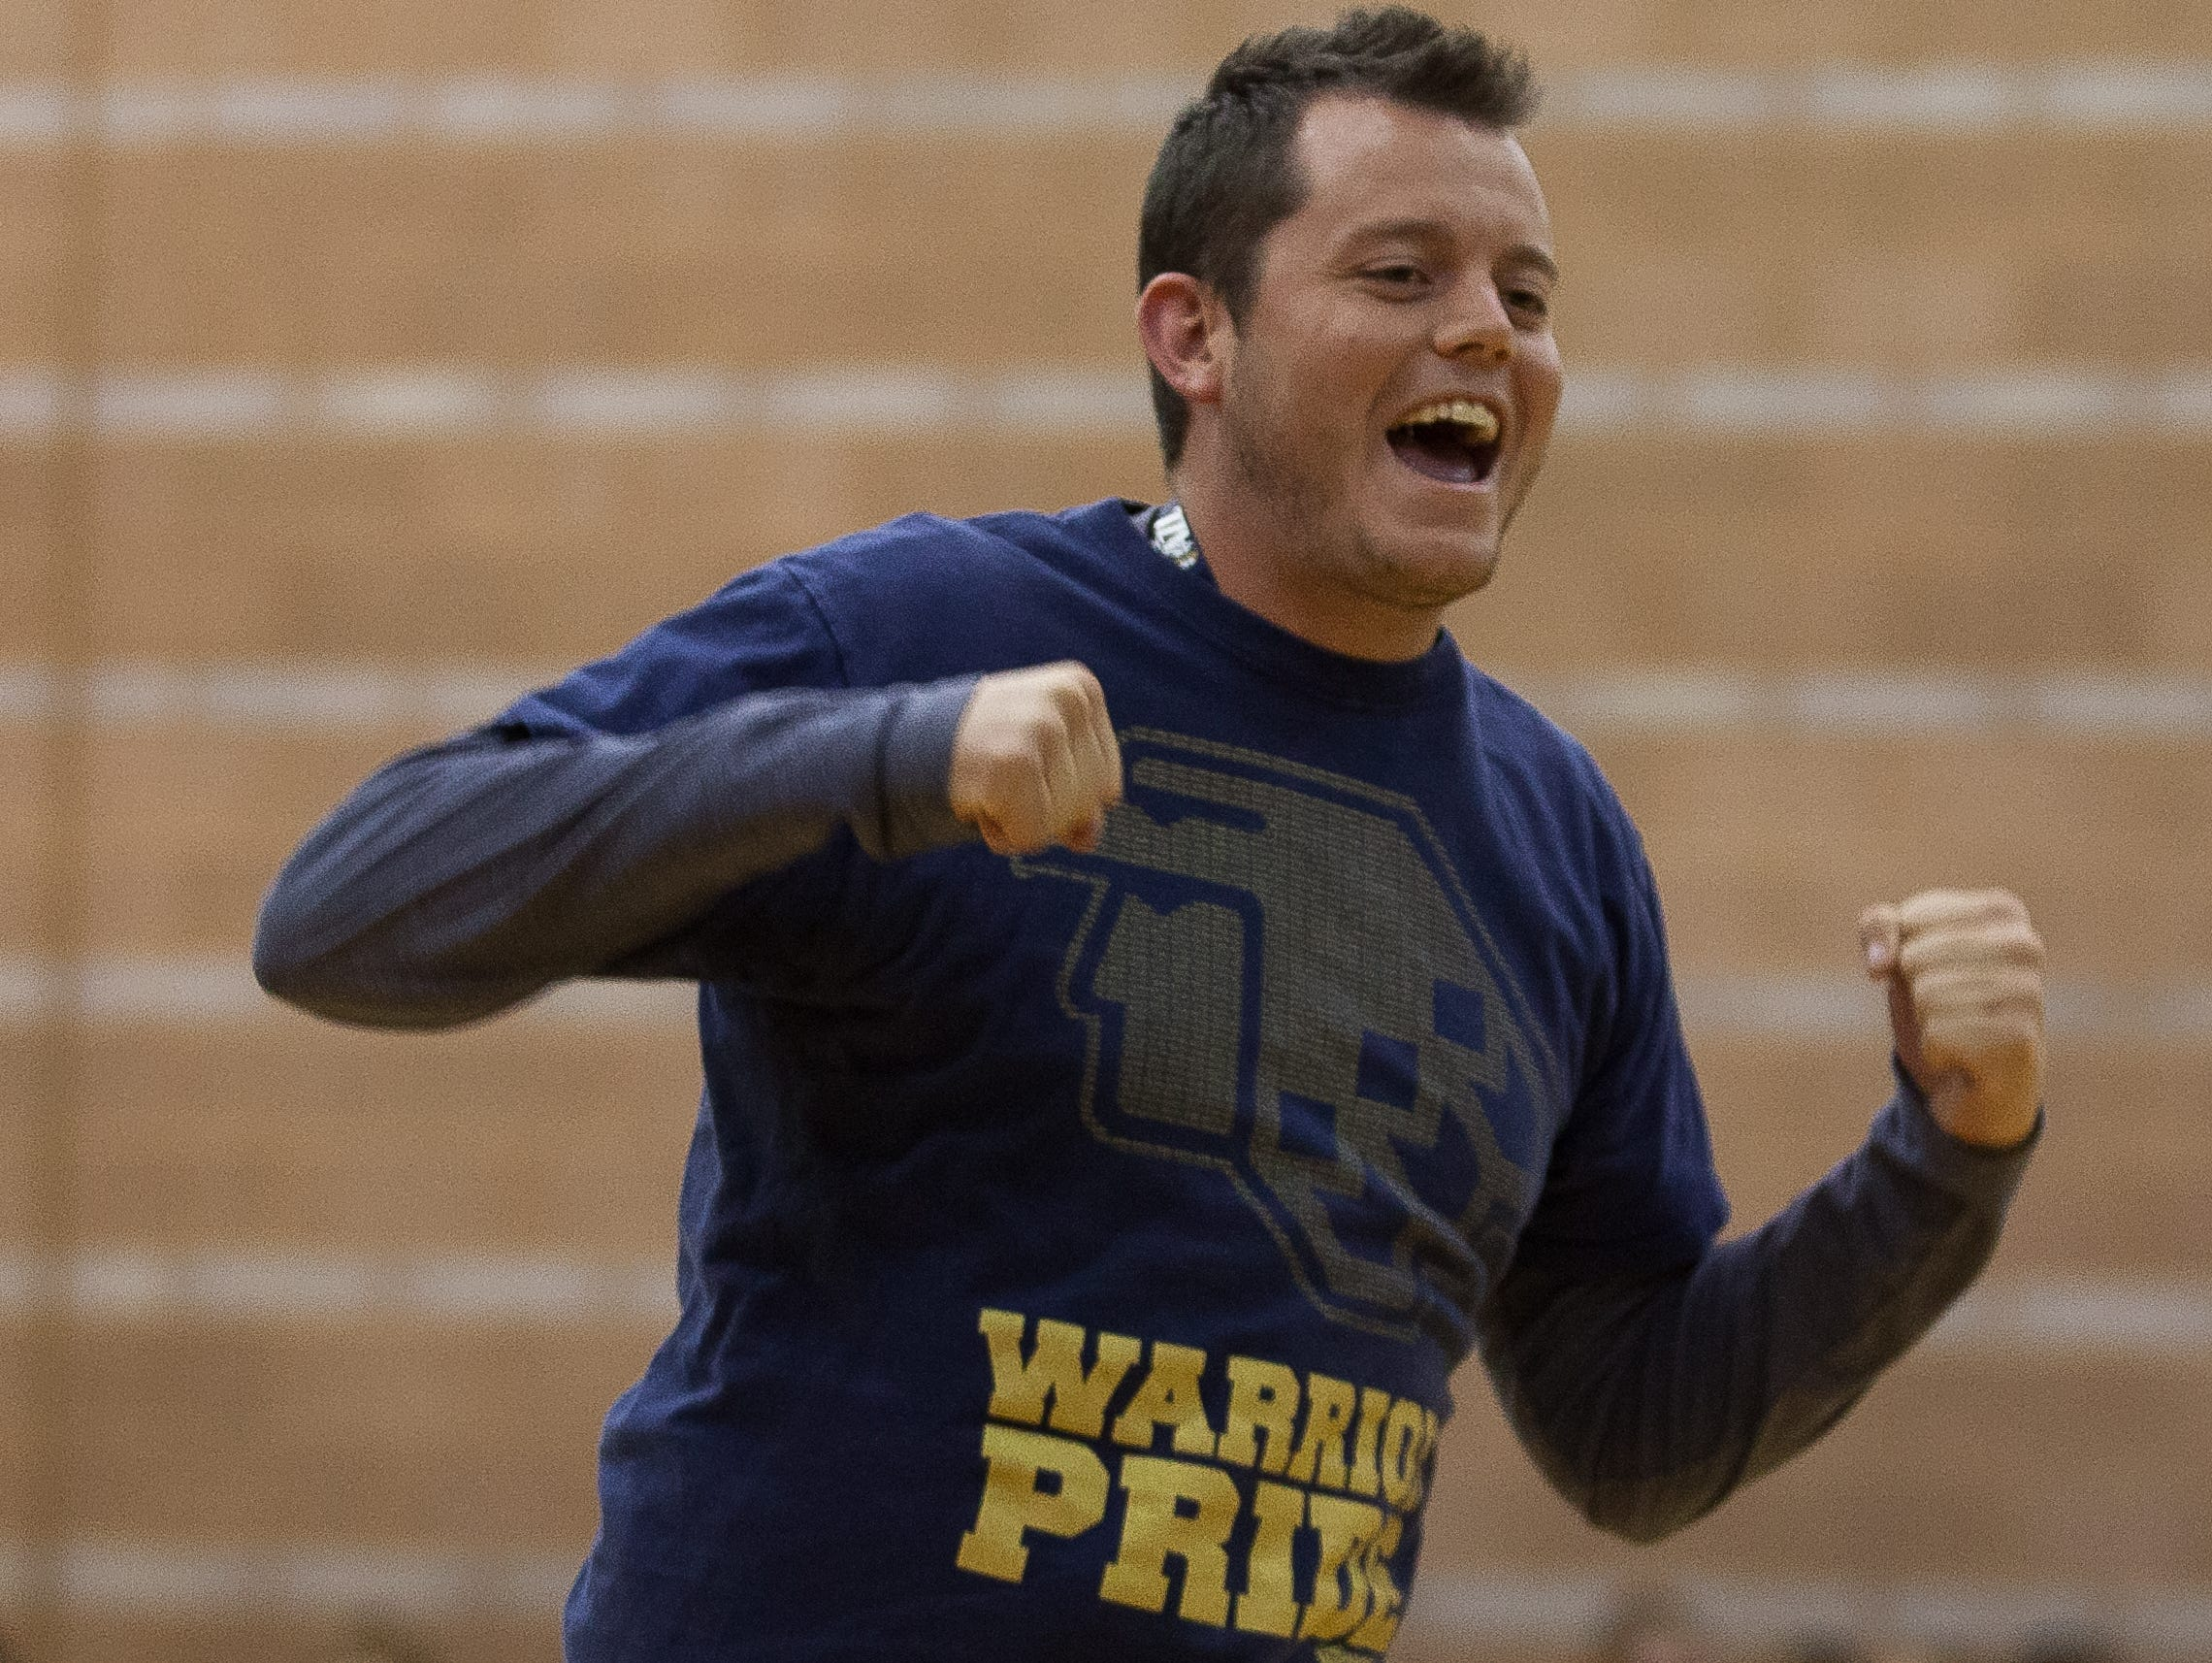 Newly appointed Snow Canyon volleyball coach Ryan Rarick has some big shoes to fill with the departure of Alaina Parker.